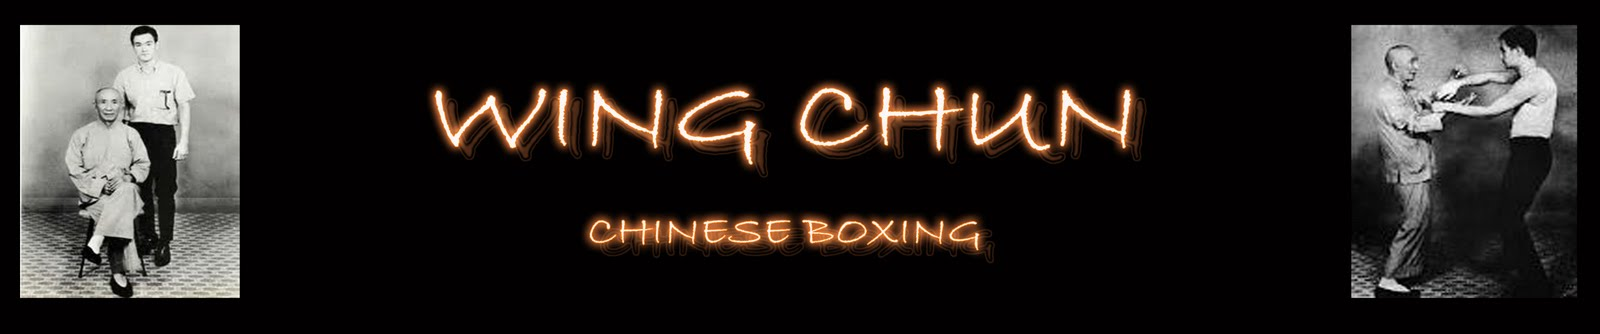 Wing Chun Chinese Boxing